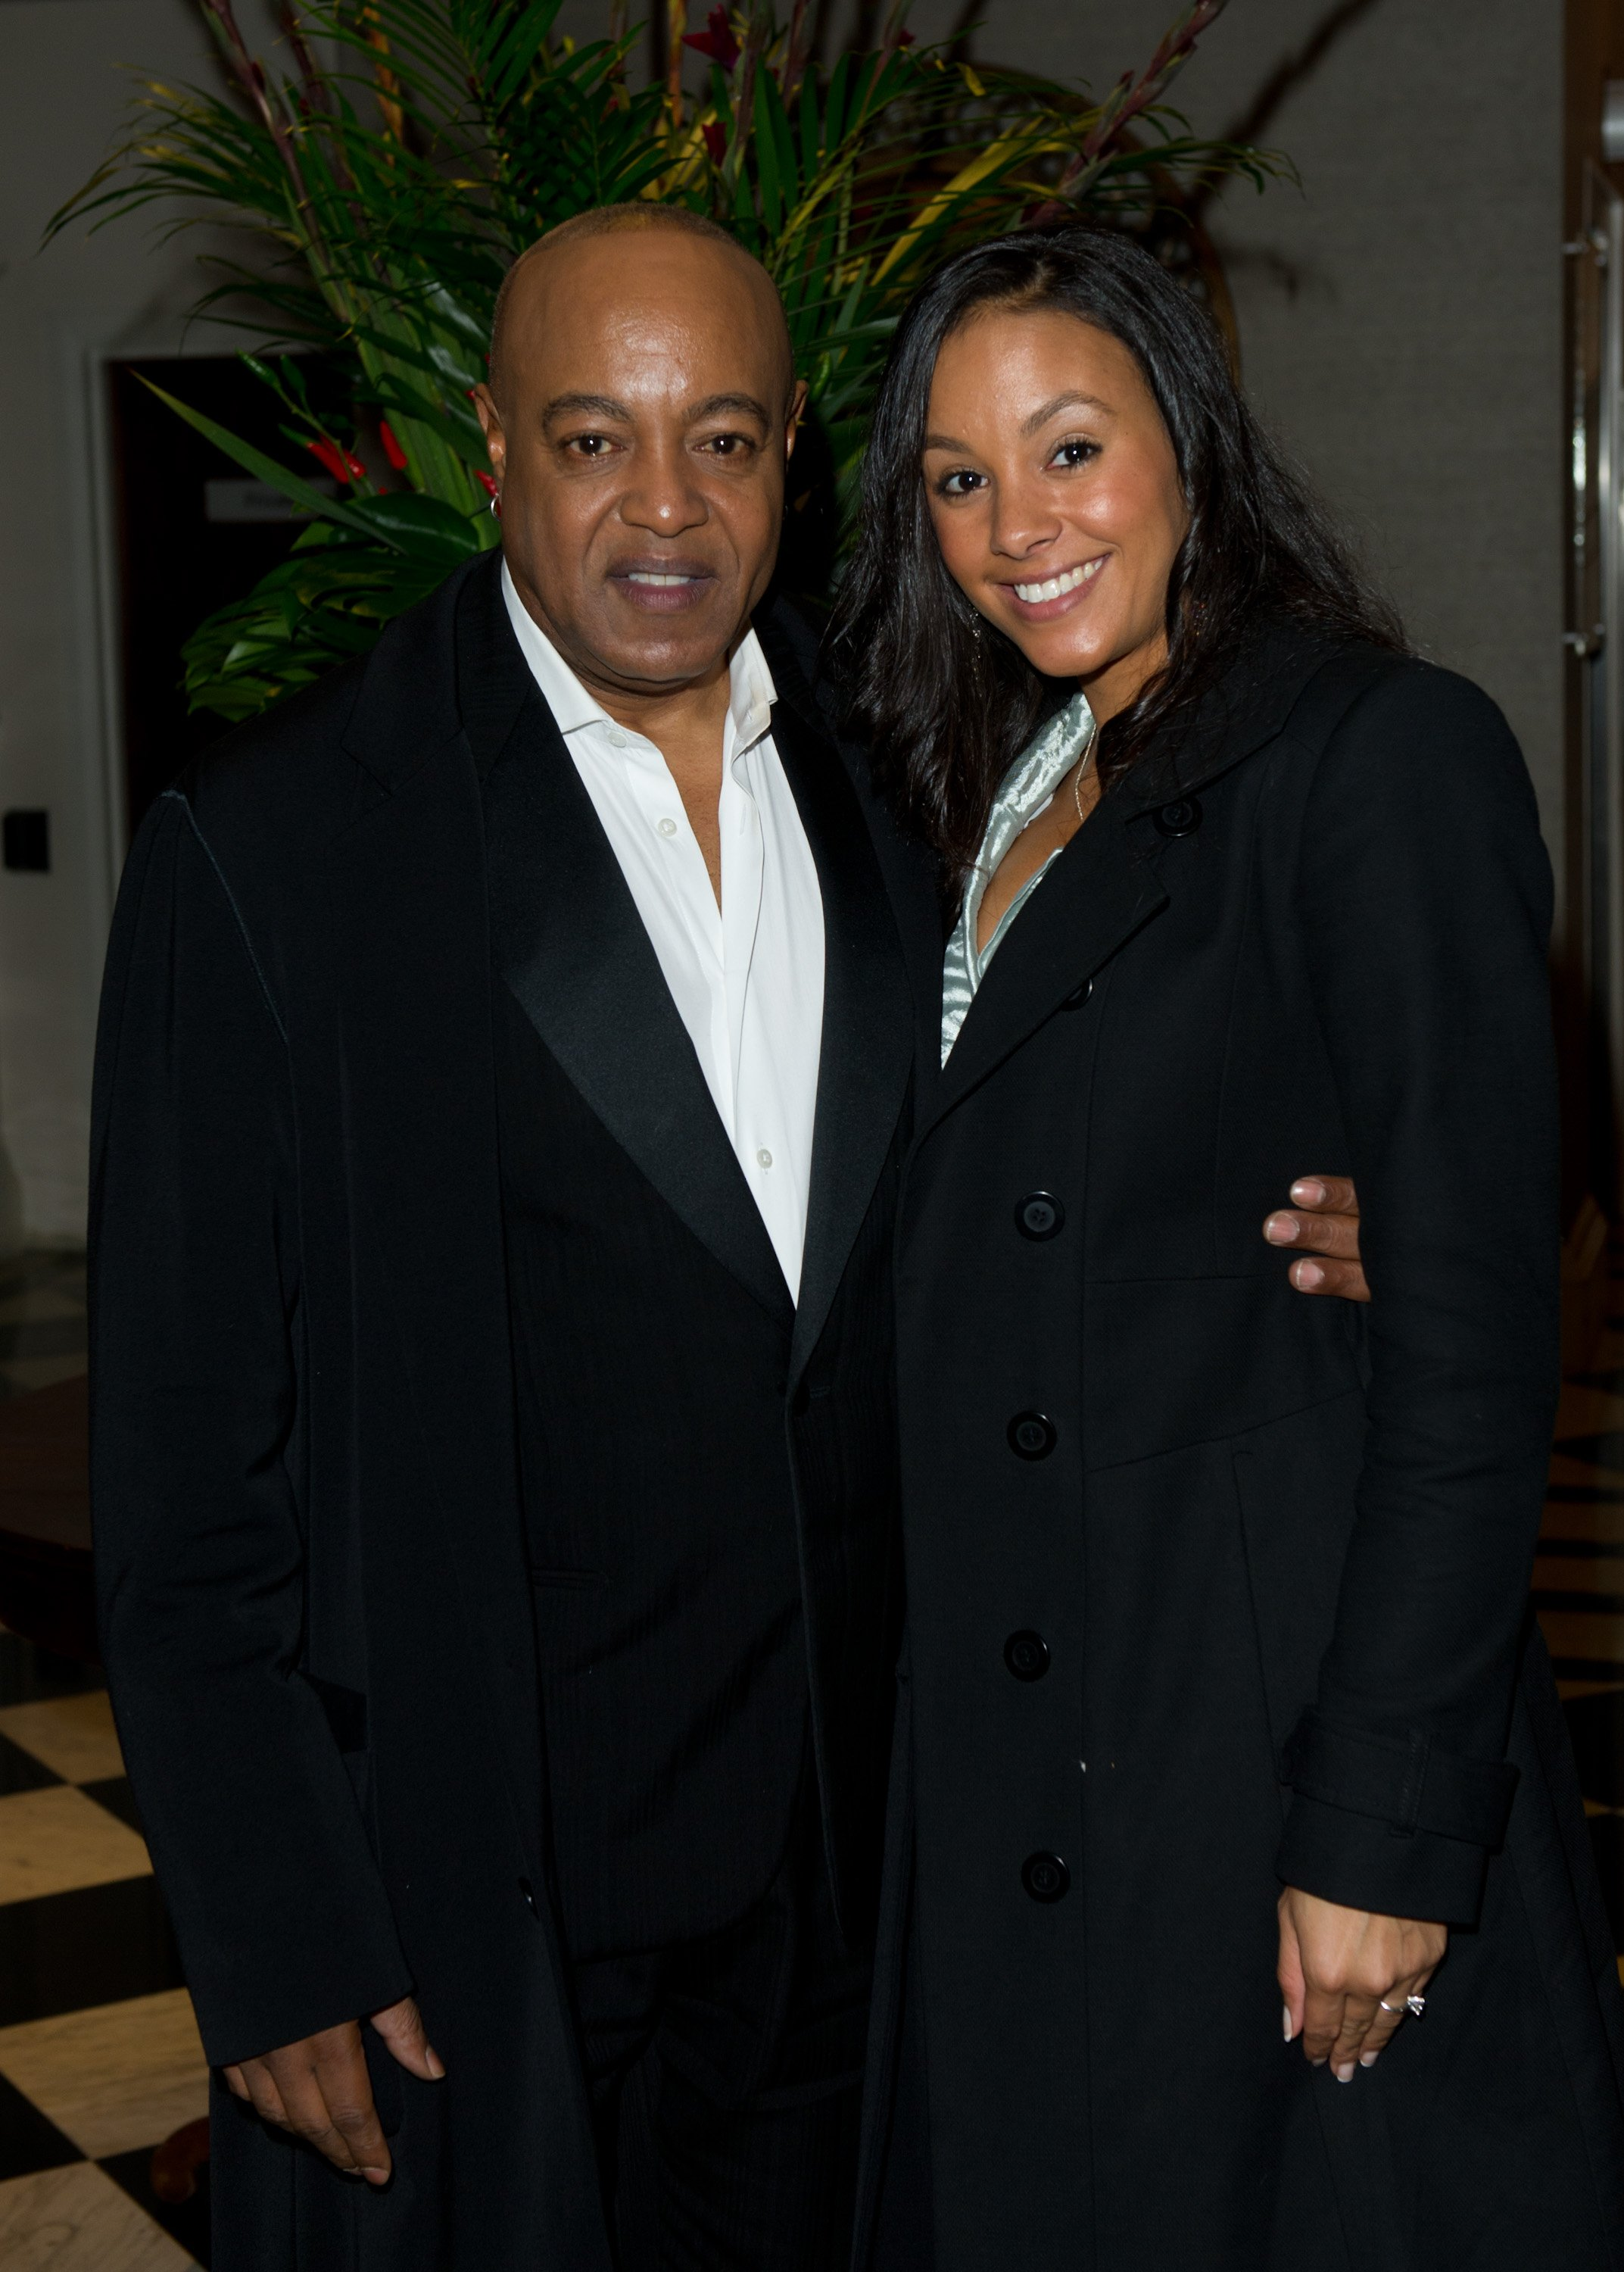 Peabo Bryson and Tonya Boniface at the afterparty of 'Michael Jackson: The Life Of An Icon' at the Connaught Rooms on November 2, 2011 | Photo: GettyImages